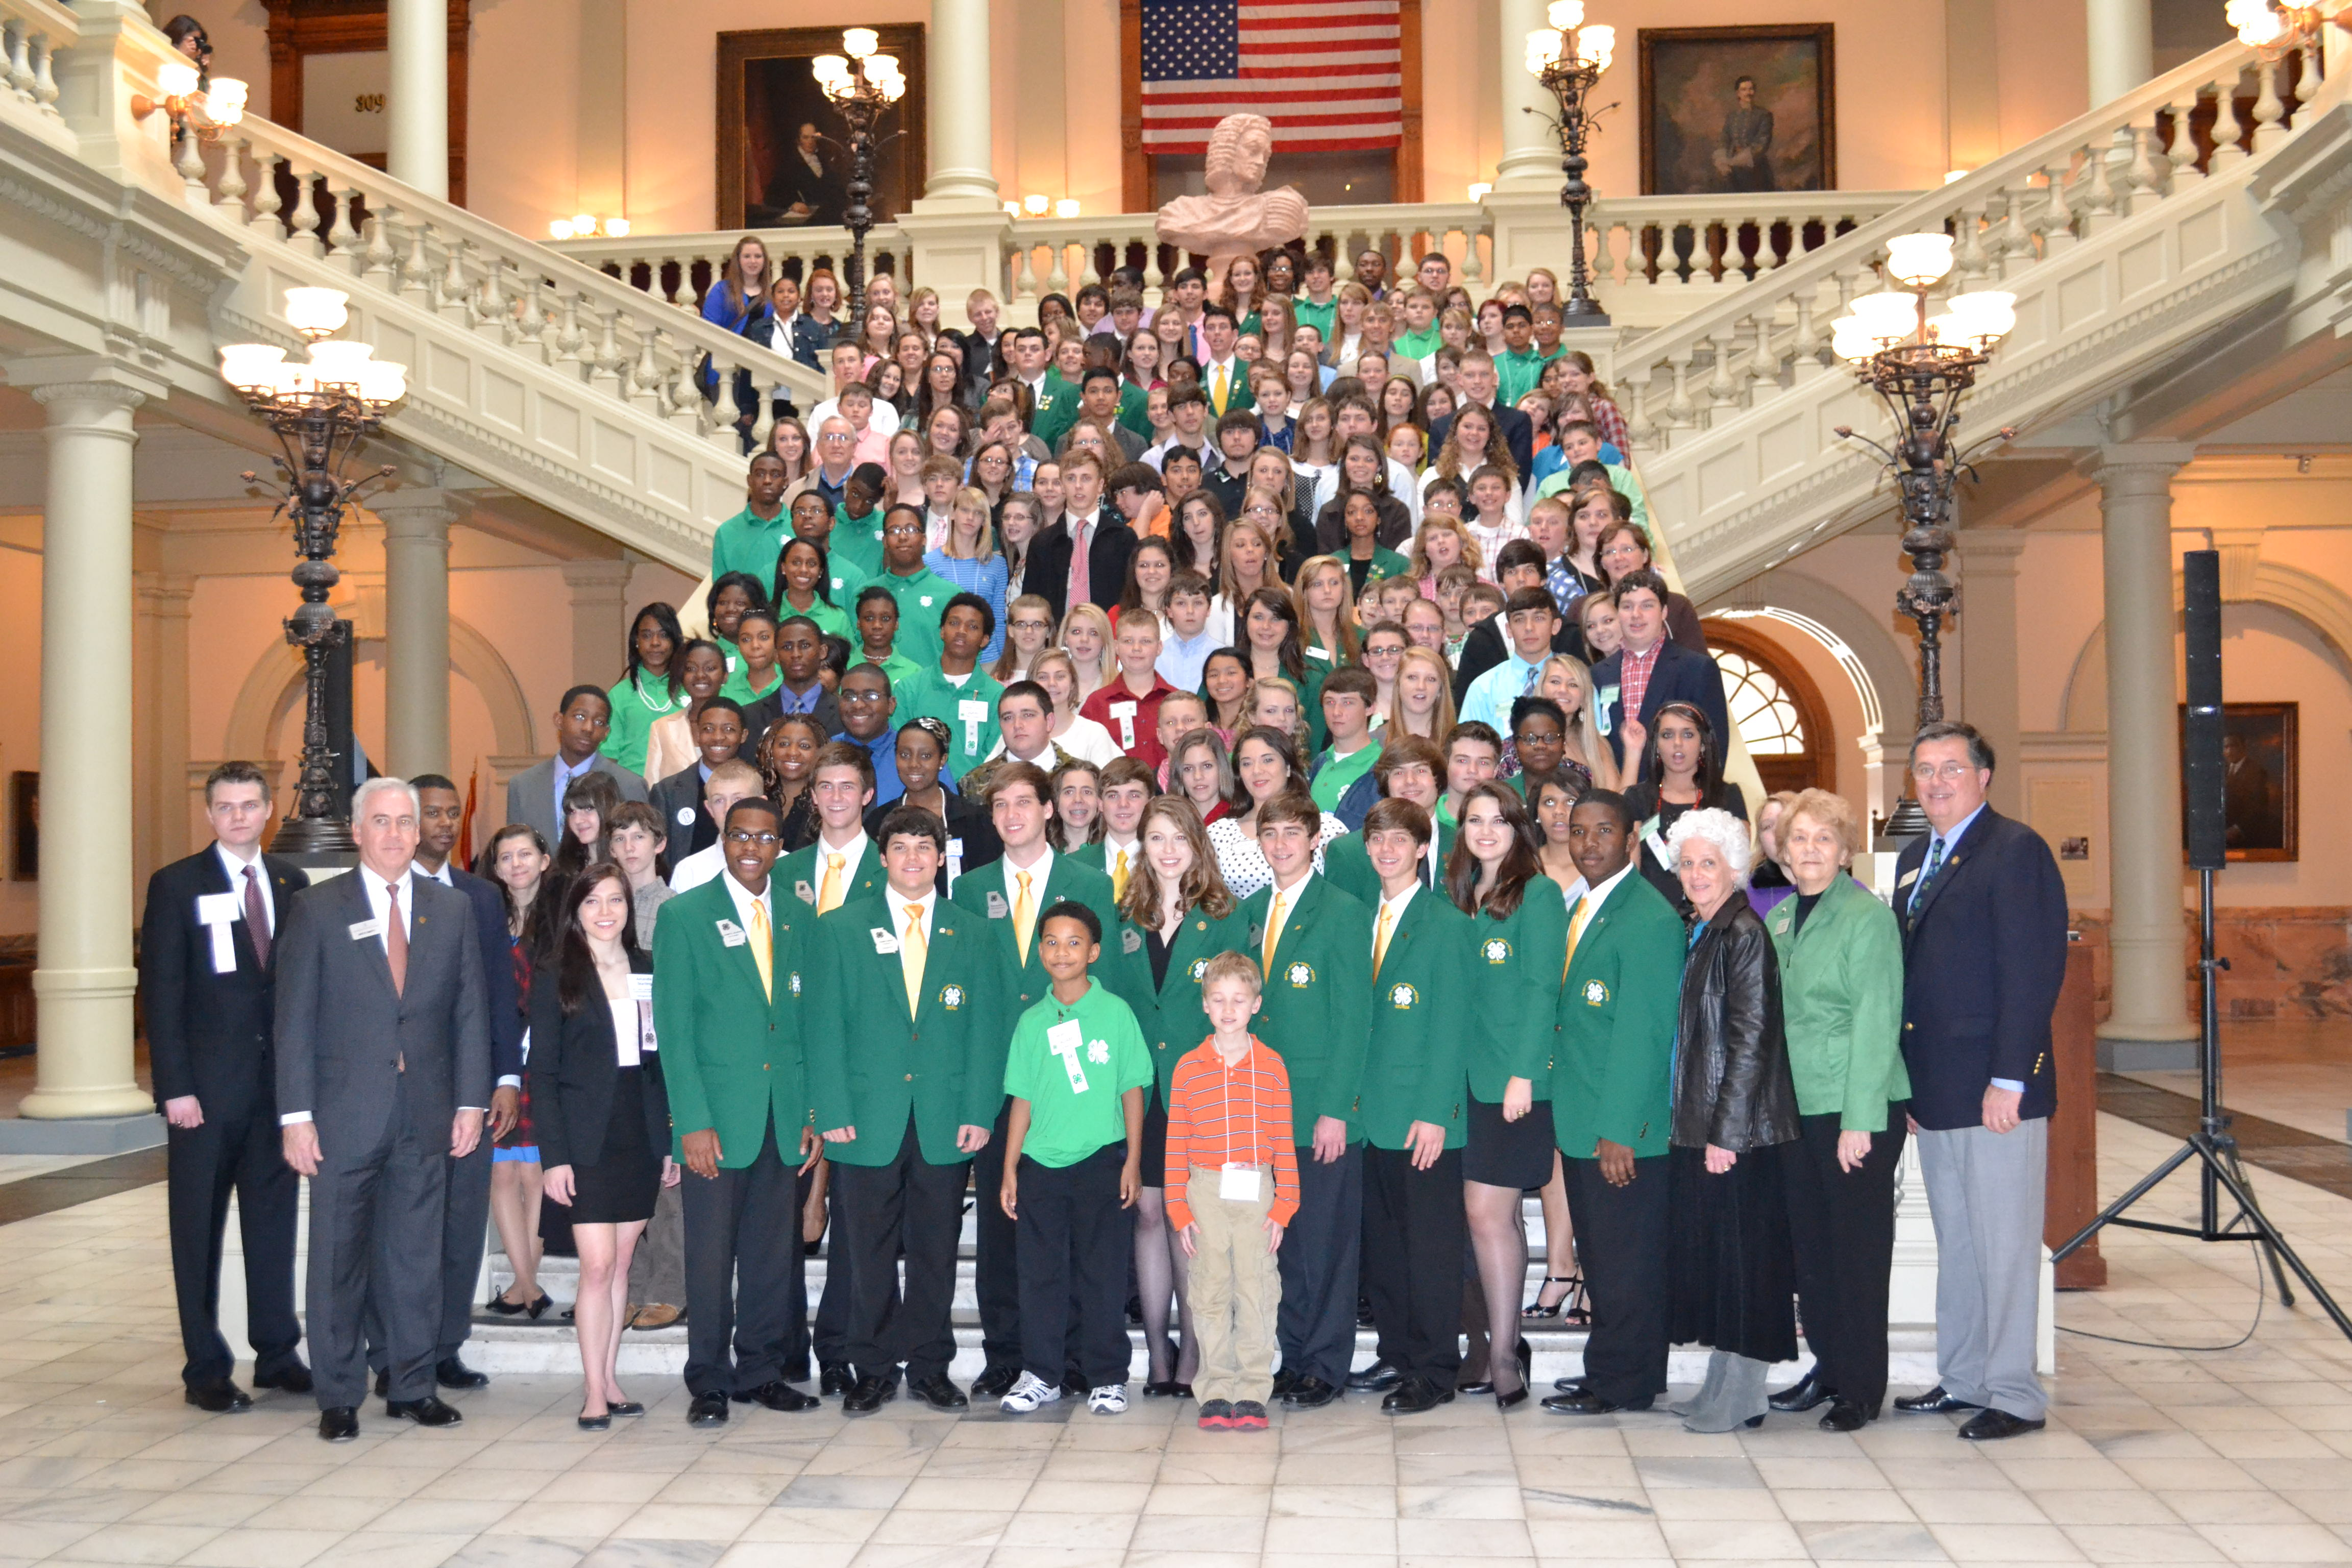 Georgia 4-H'er stop for a photo on the Georgia State Capitol steps on Annual Leadership Day and 4-H Day.